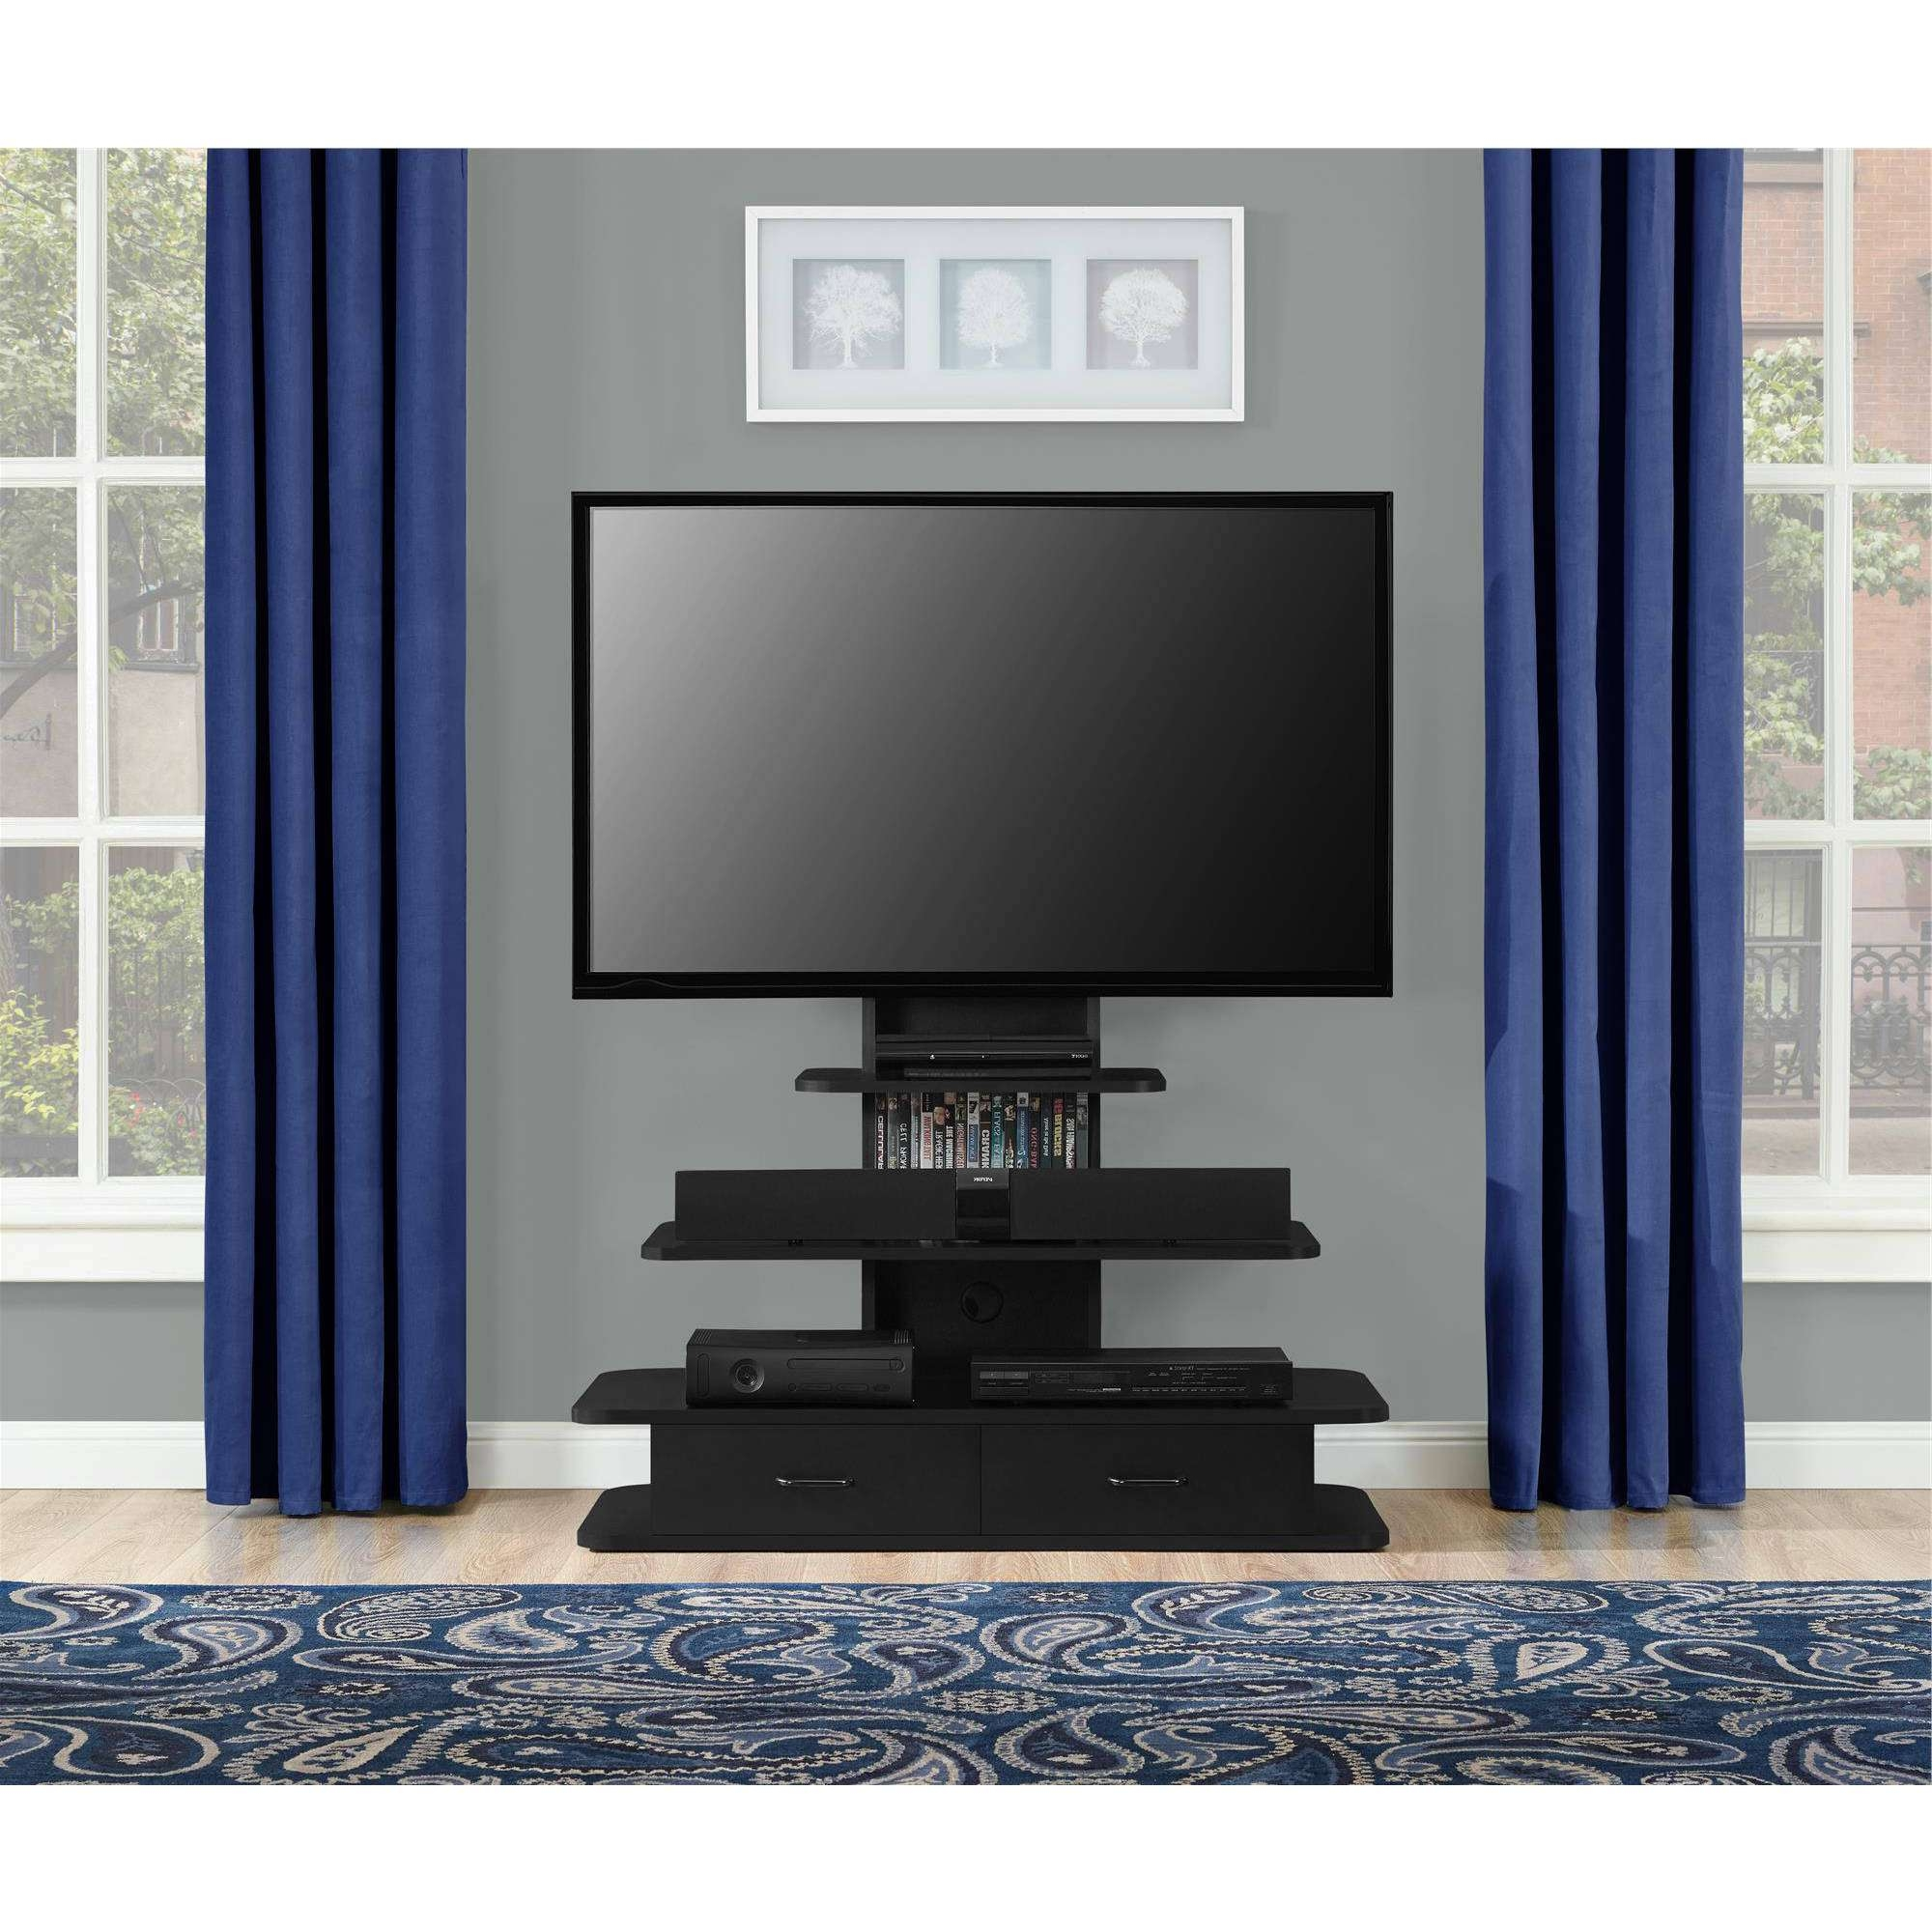 Black Freestanding Tv Stand With Mount And Drawers Of Cool Tv With Freestanding Tv Stands (View 6 of 15)